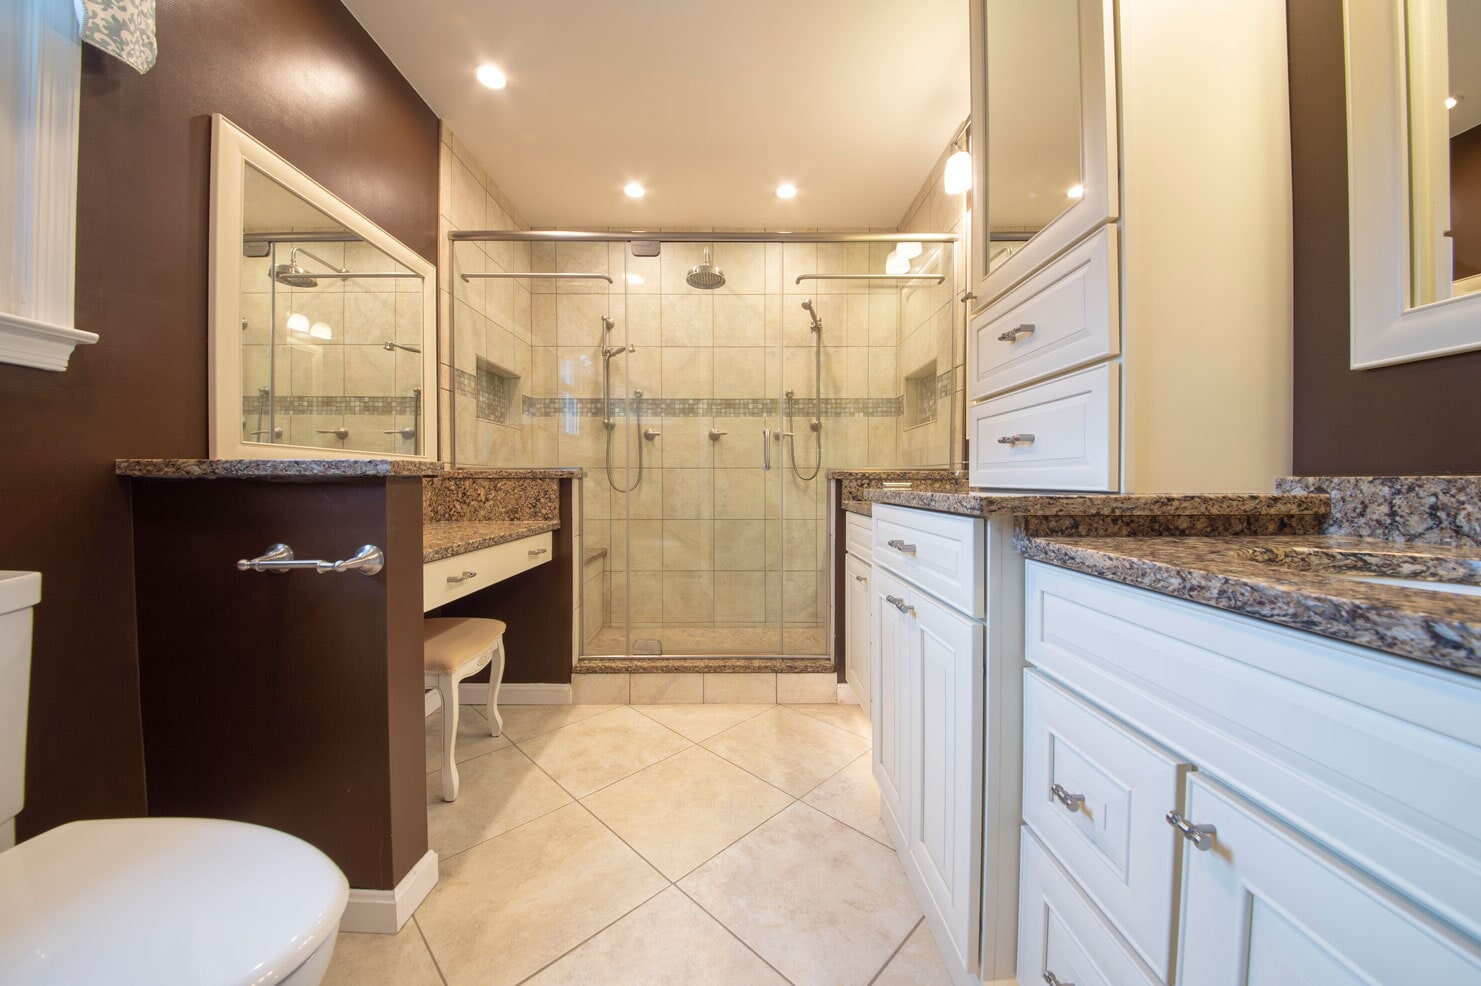 Bathroom remodeling in Leonardtown, MD by Southern Maryland Kitchen, Bath, Floors & Design